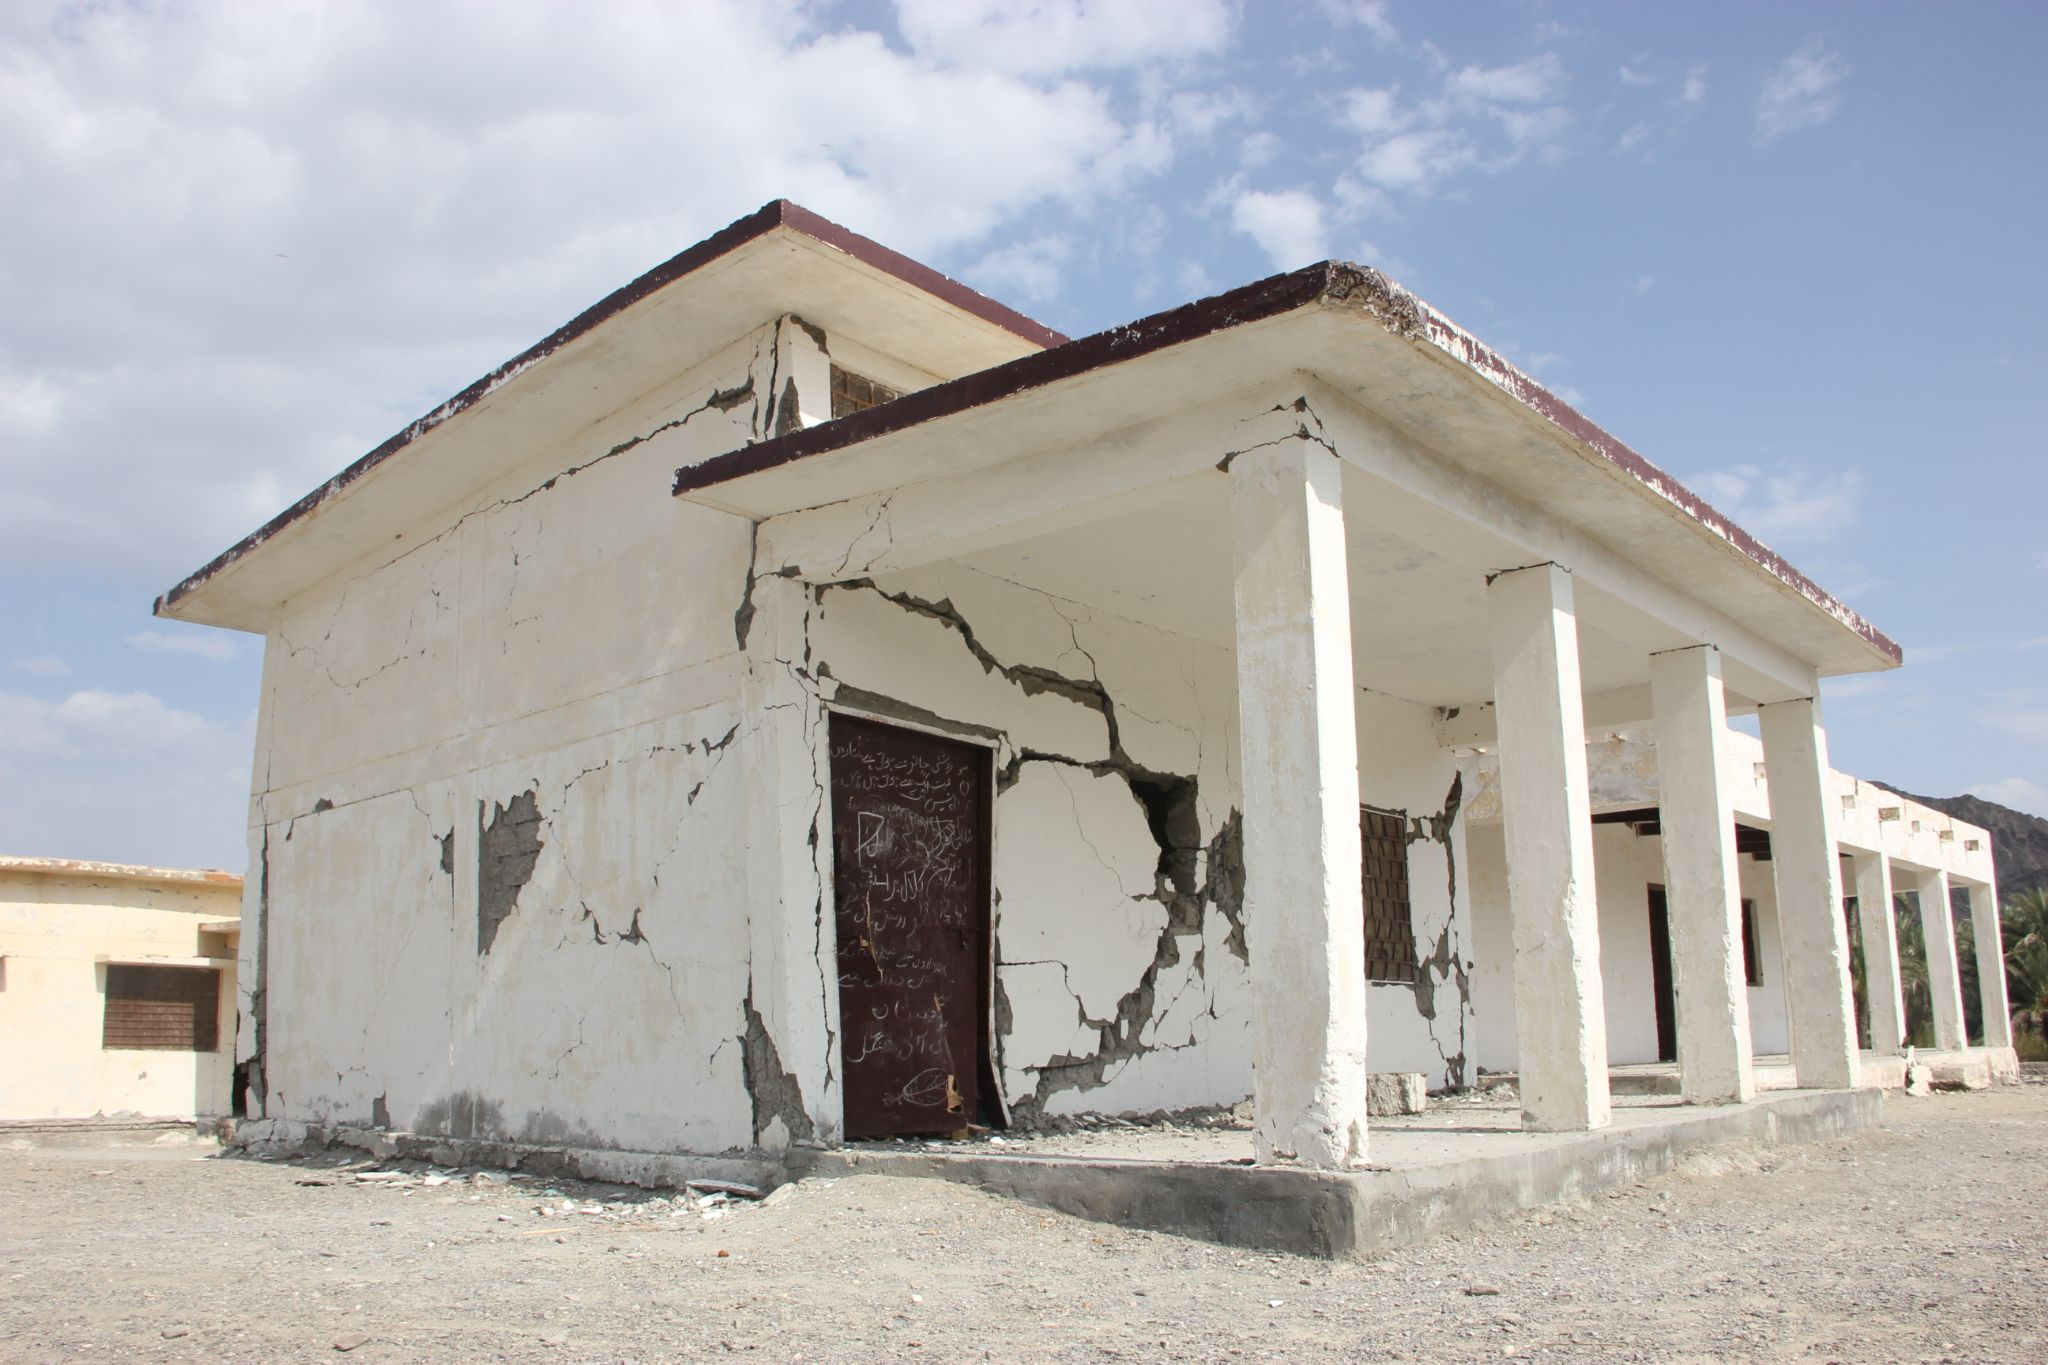 Schools affected by the earthquake in Balochistan by rahibaba.izback